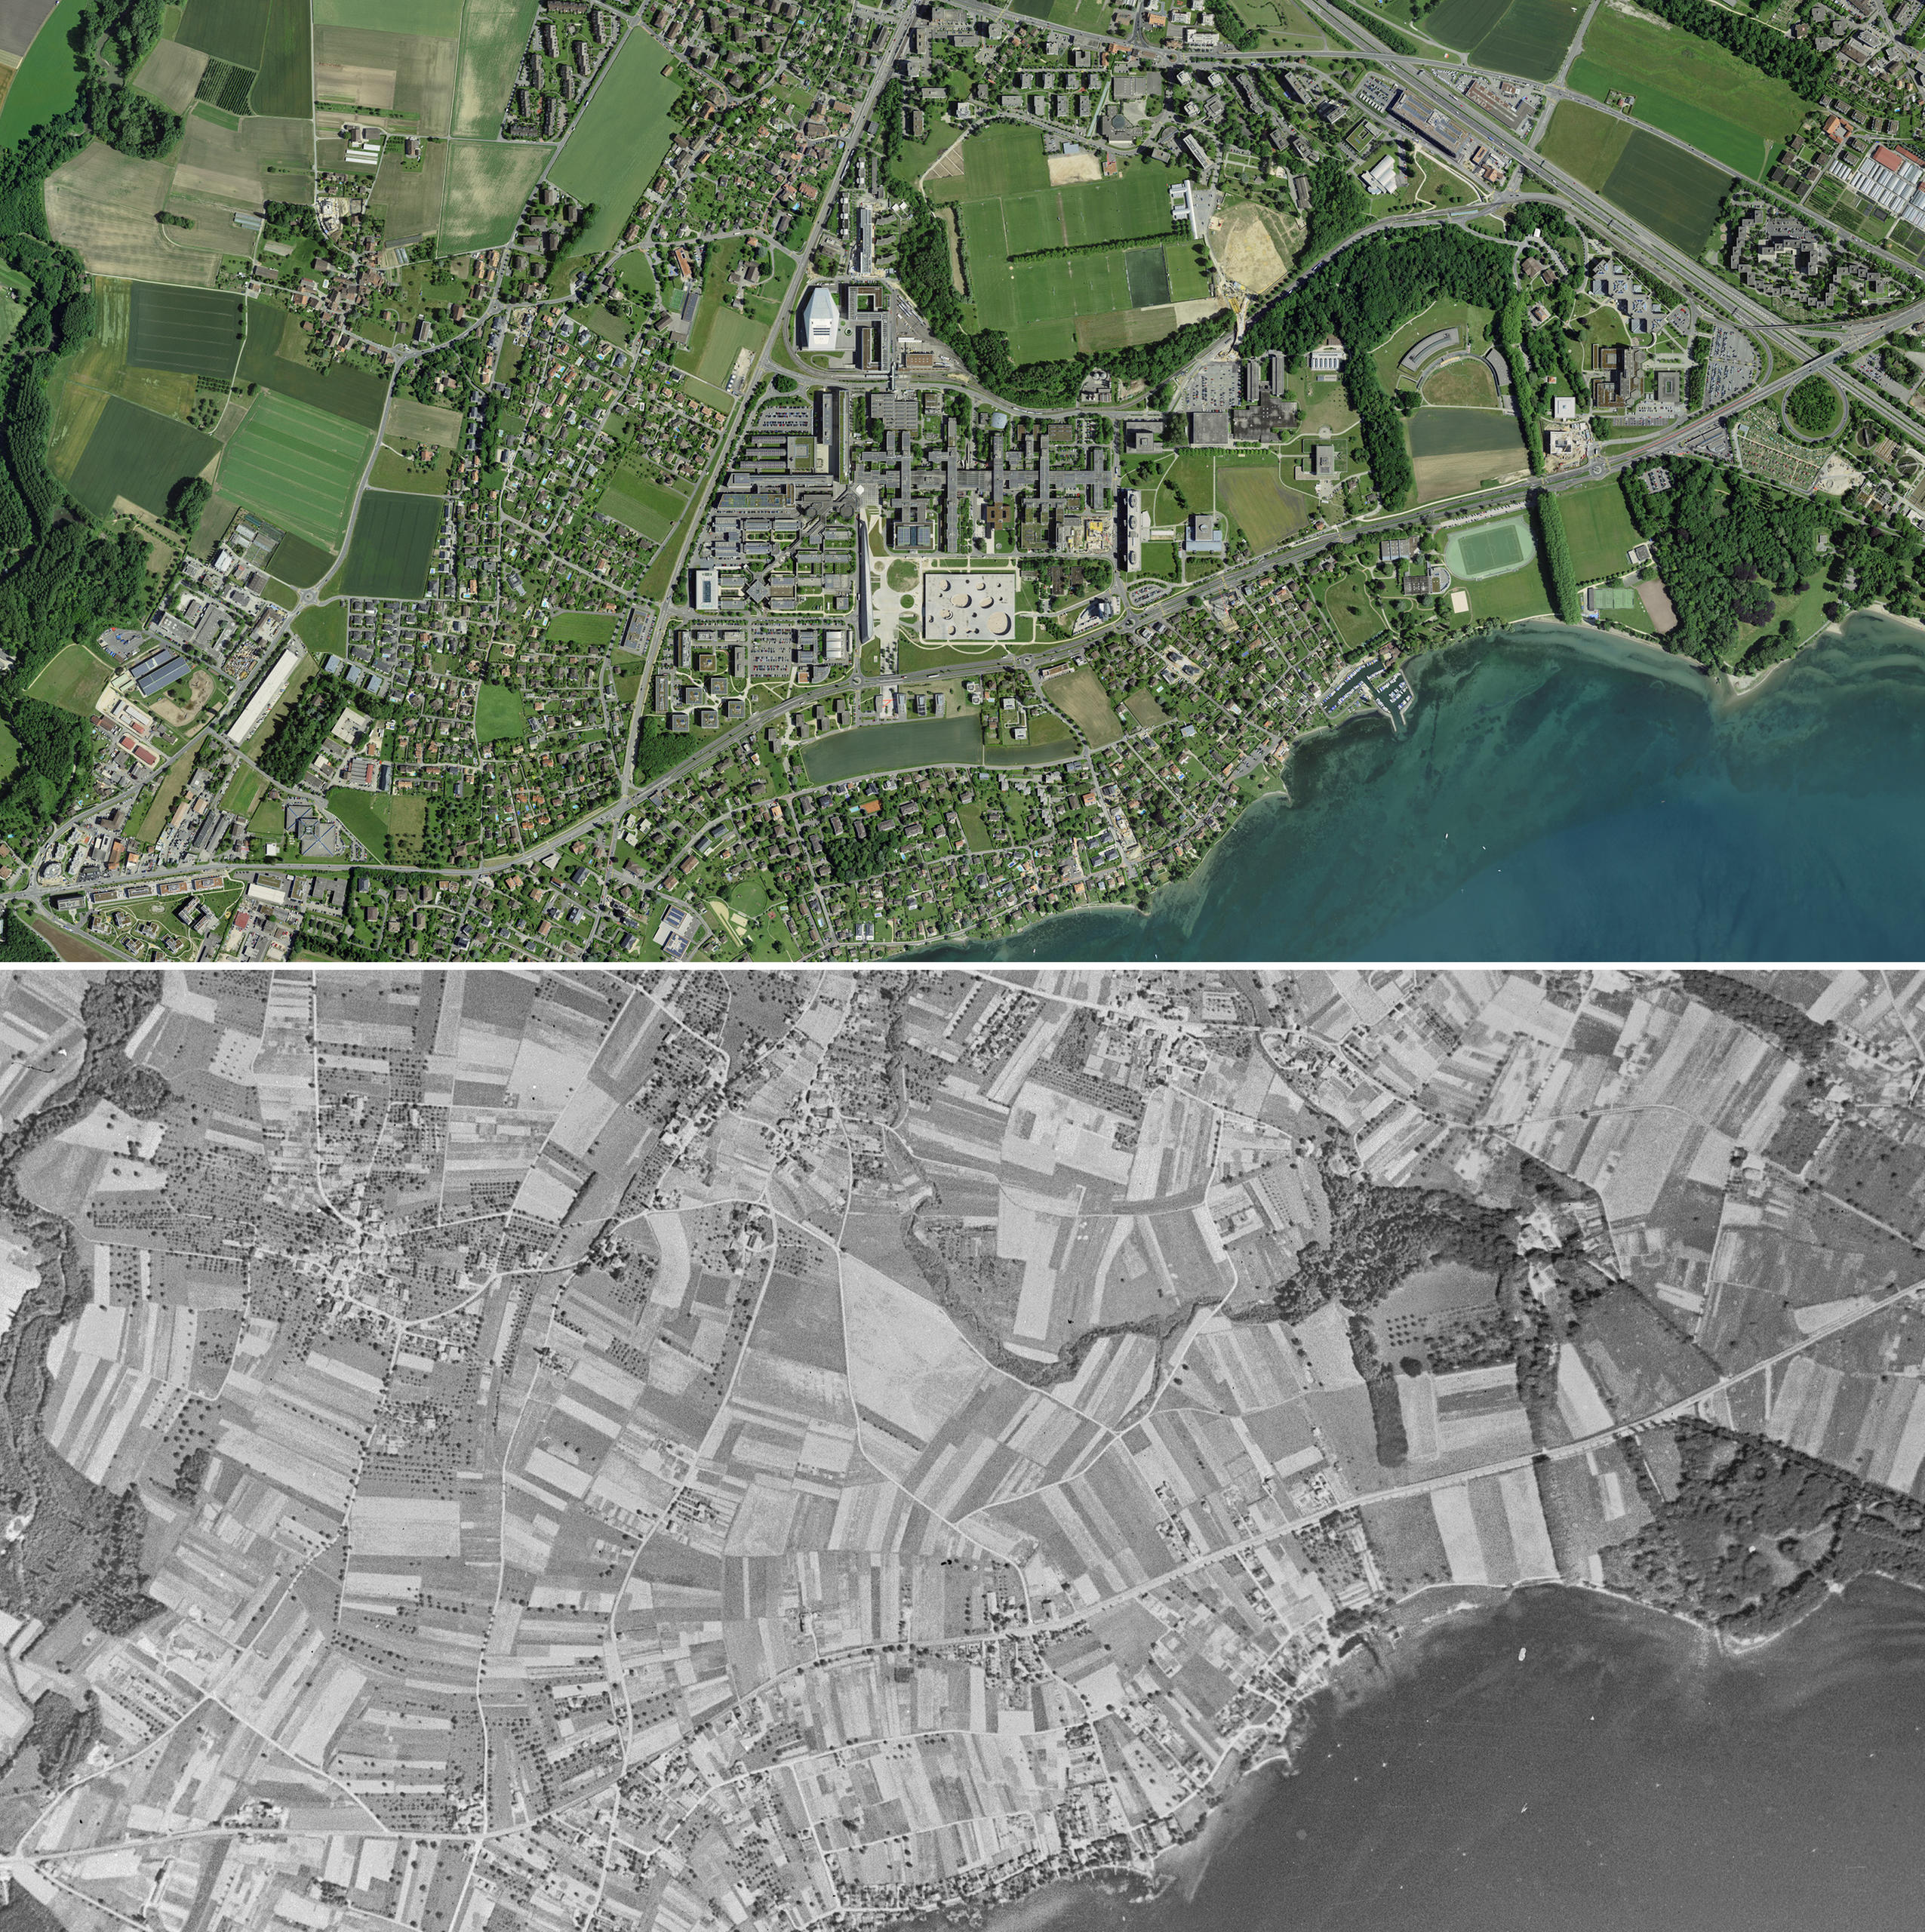 Aerial view of Ecublens above in 2017 and below in 1946